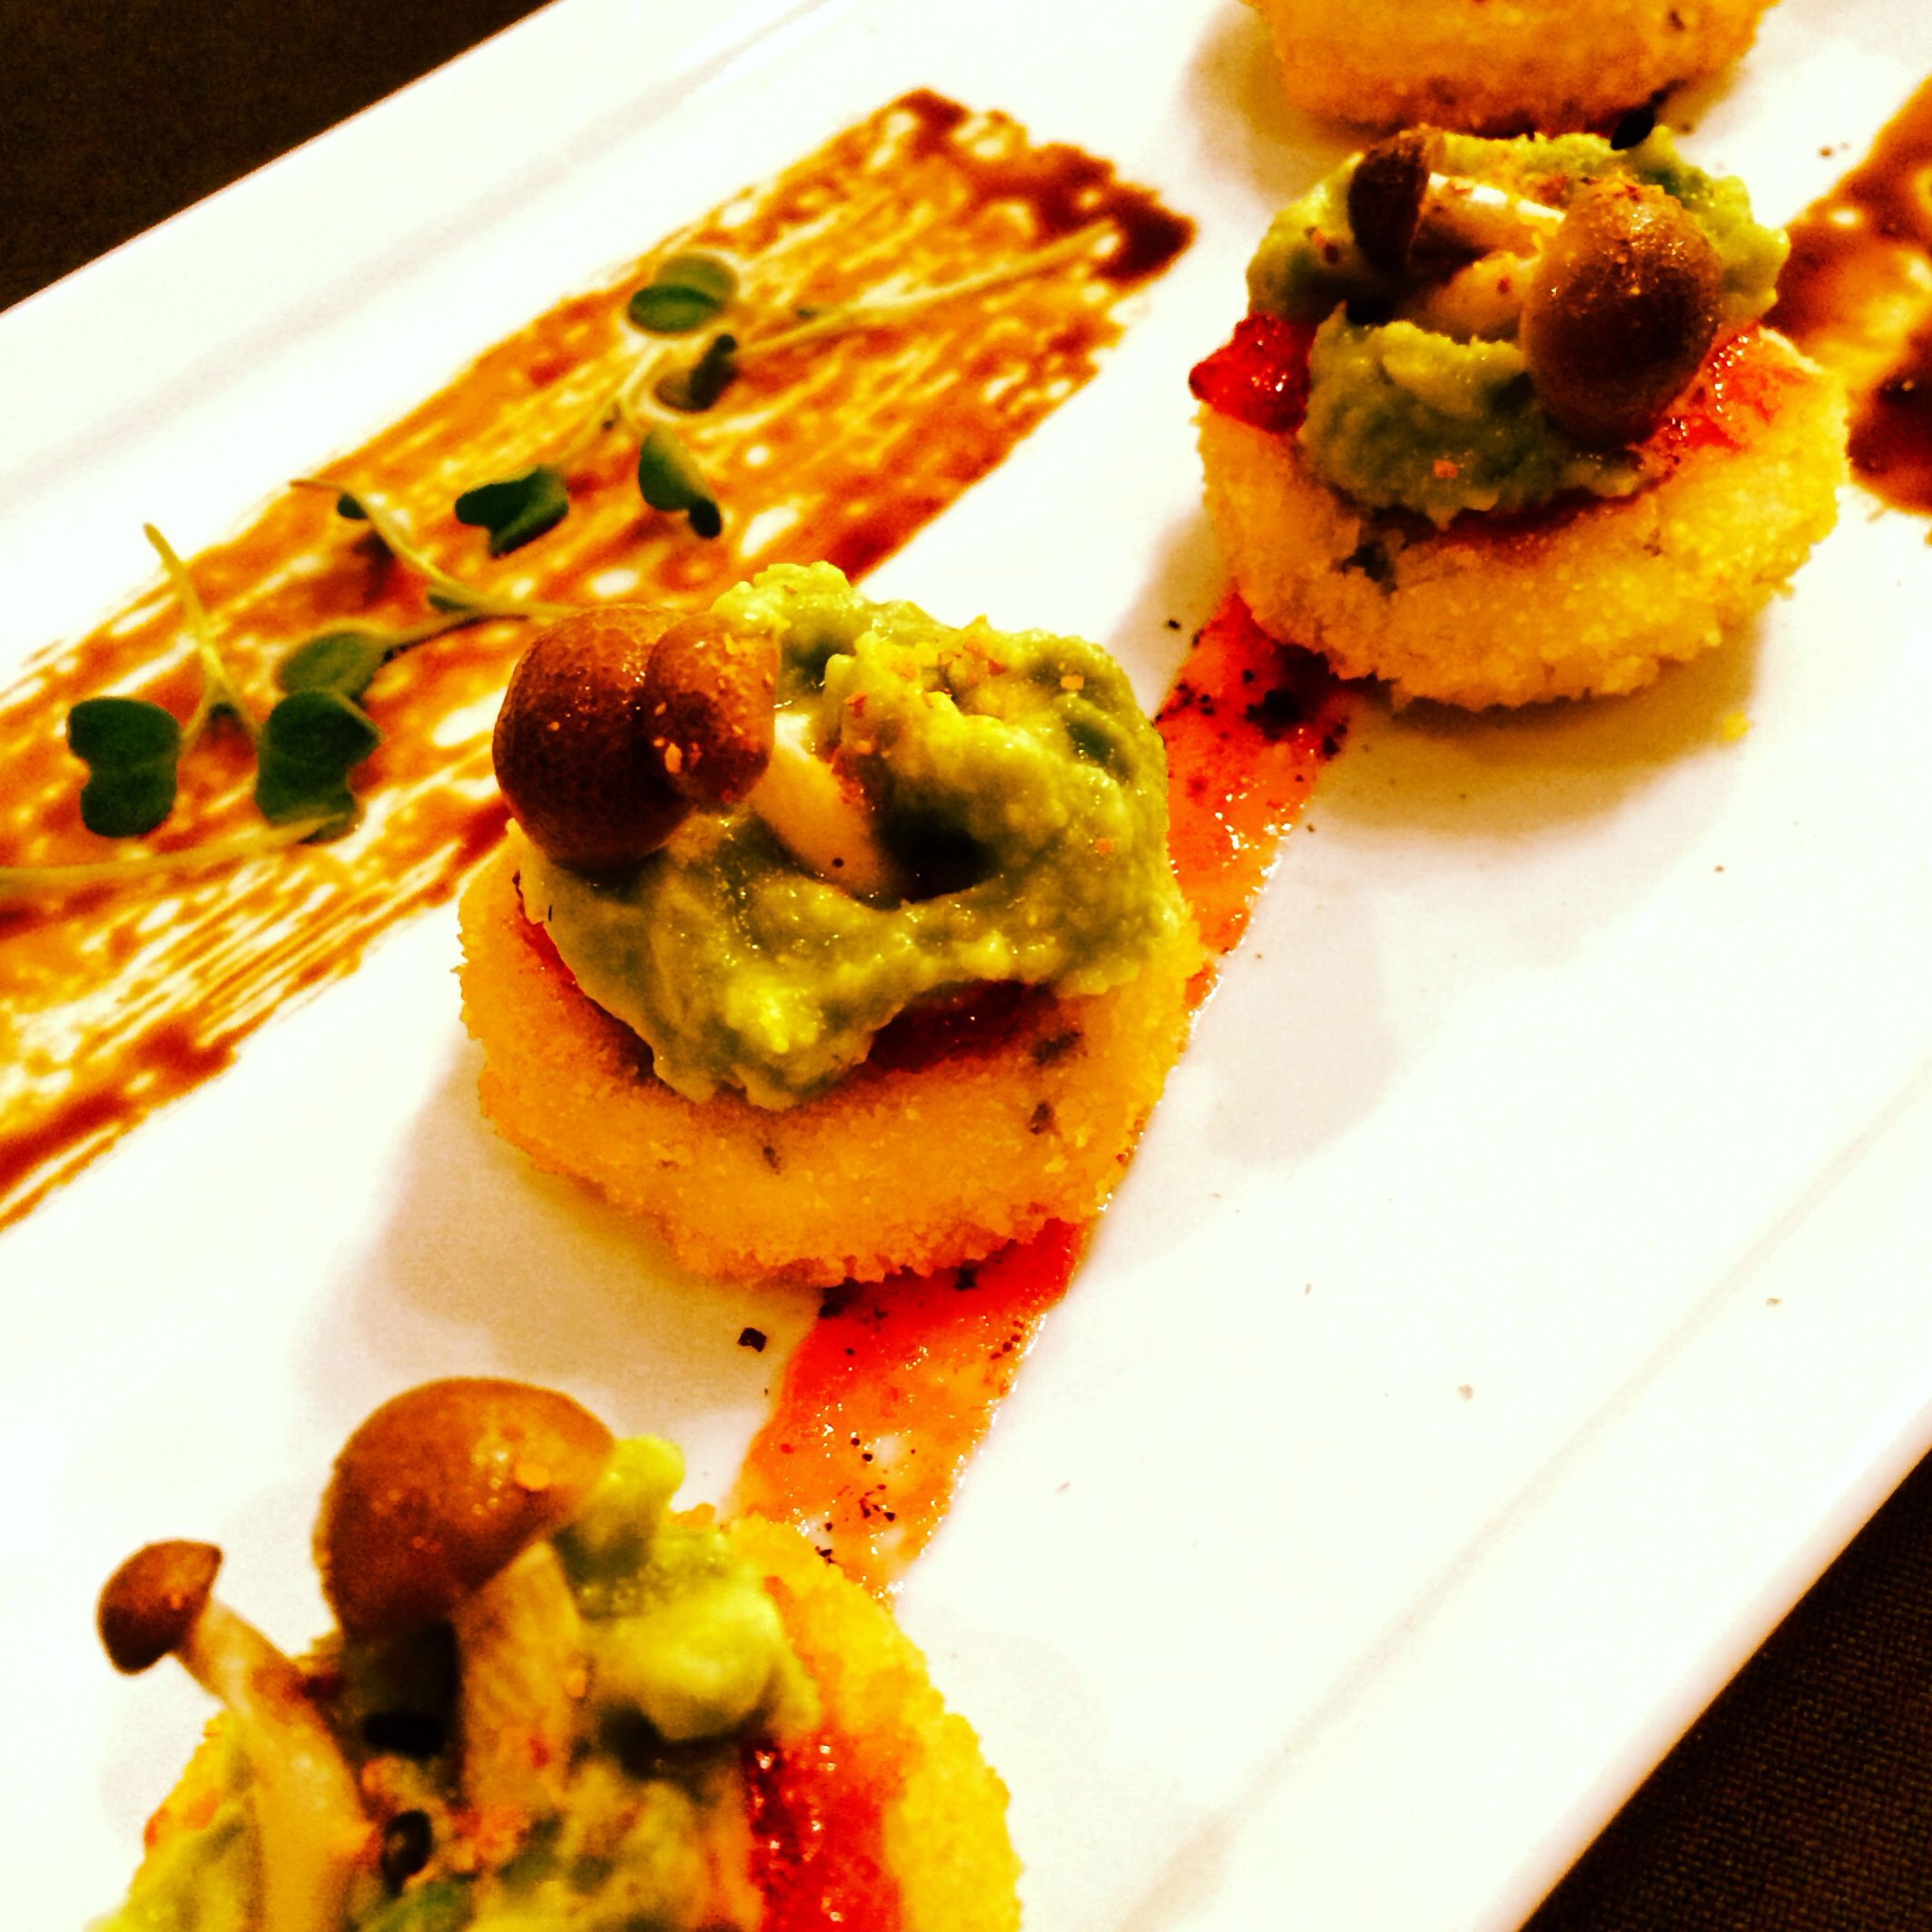 Cilantro rice cake with pickled mushrooms and avocado